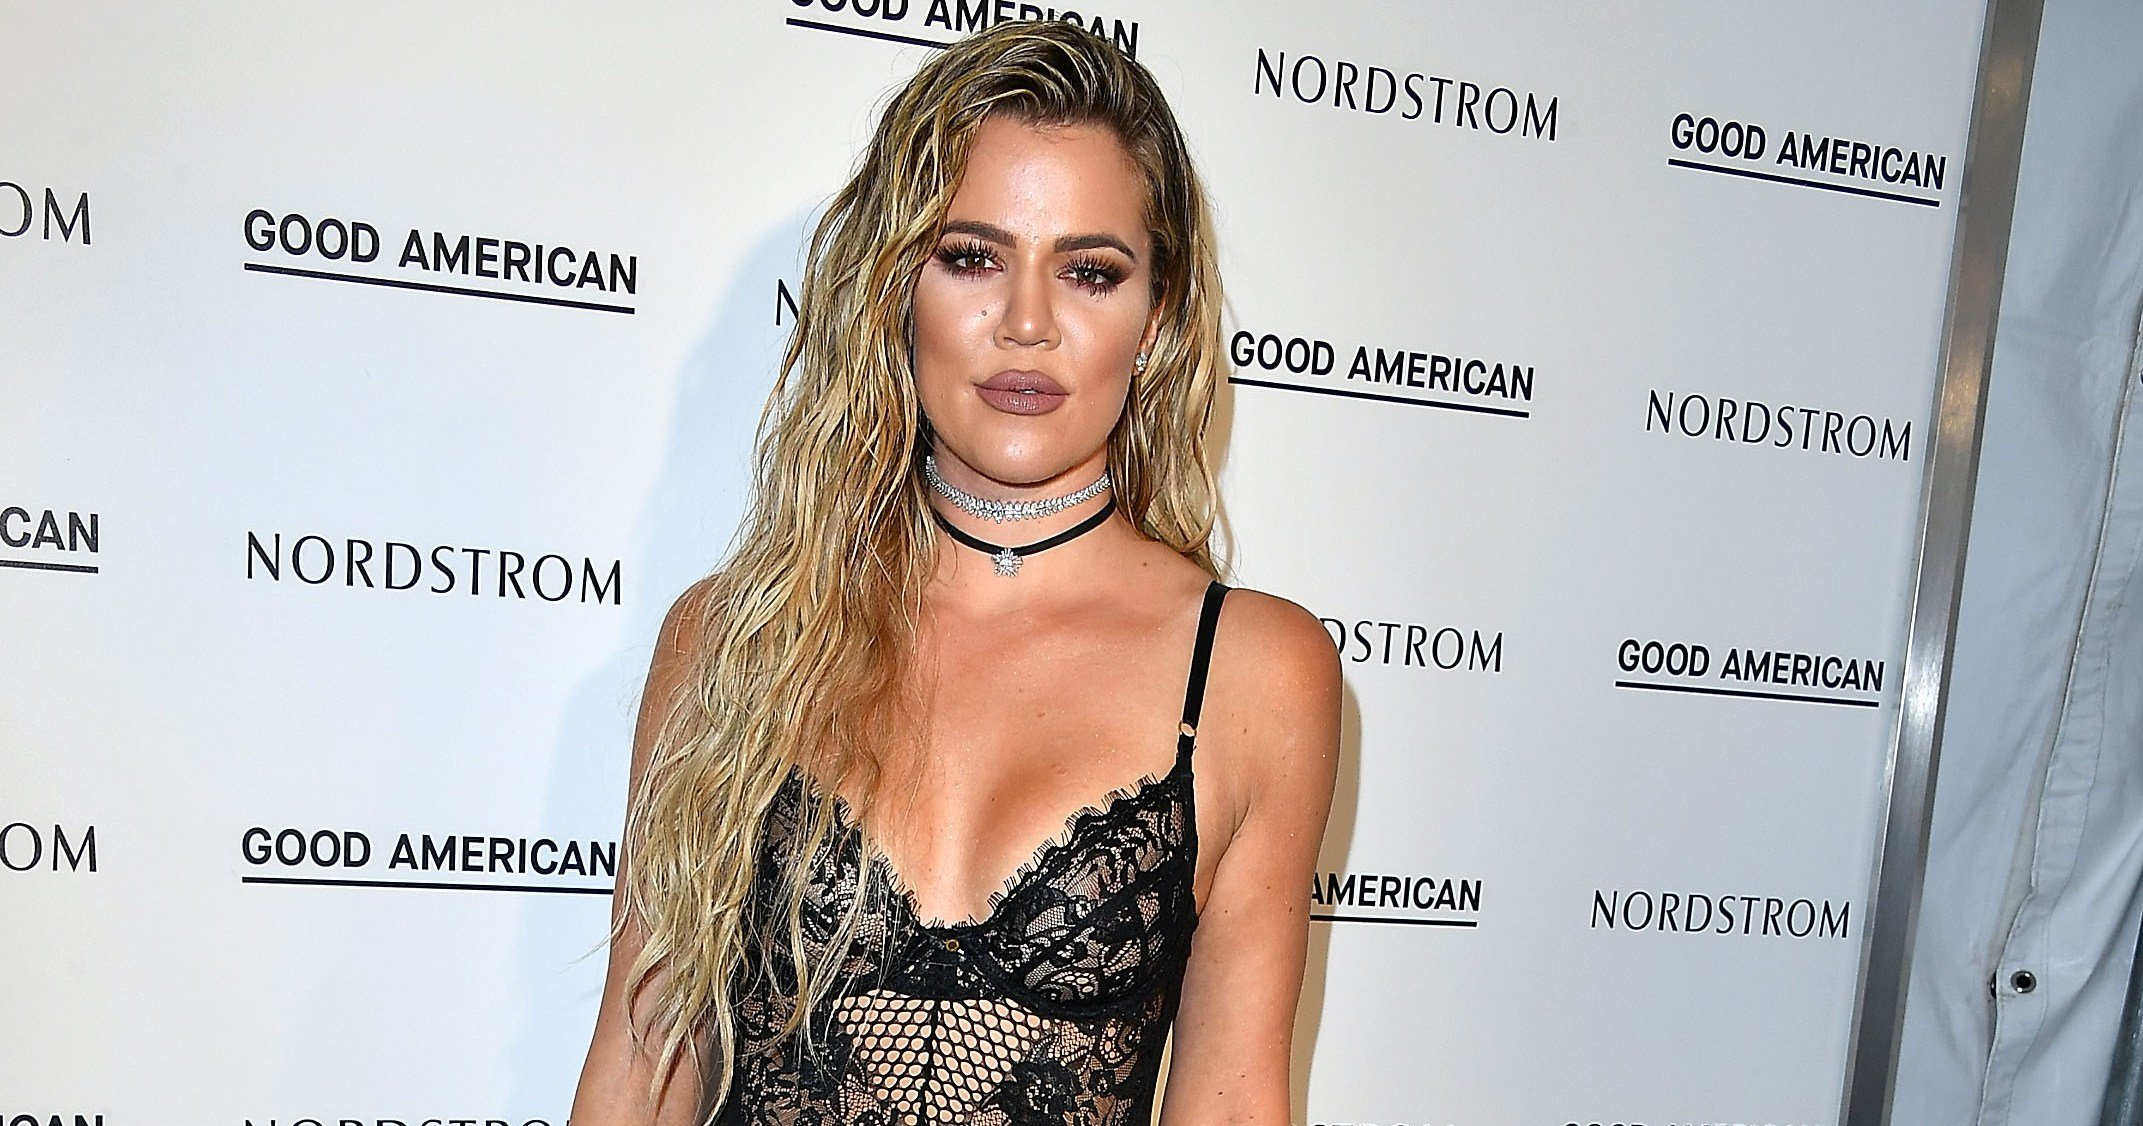 ab3acf84ae0 Grab a Bodysuit From Khloe Kardashian s Clothing Line at an Awesome ...